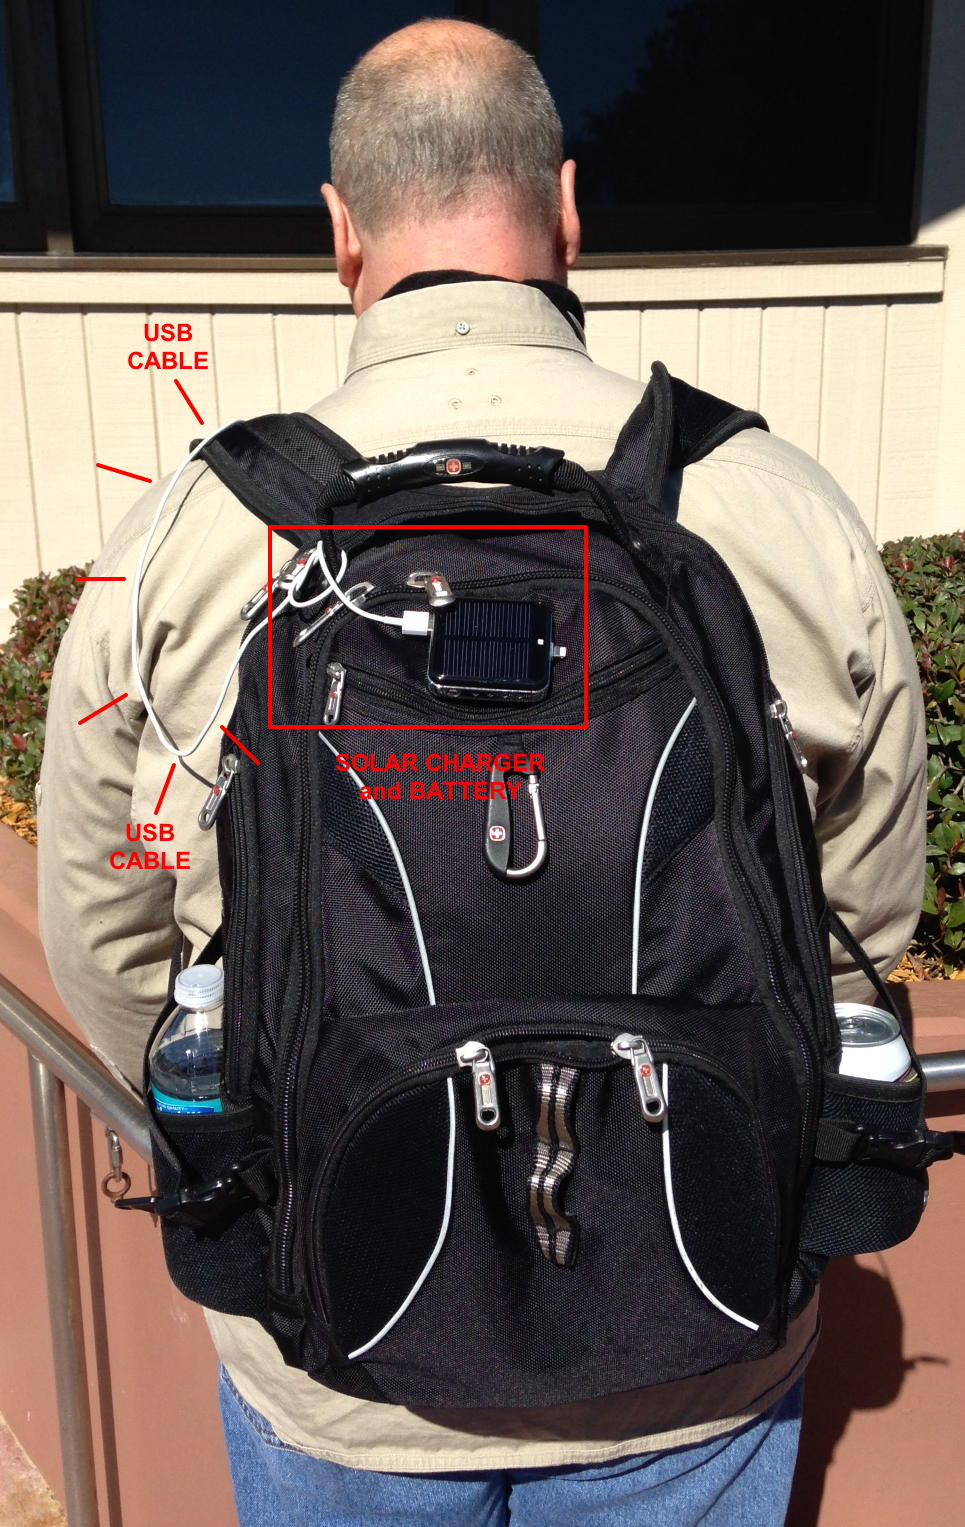 Here's the solar charging battery back, mounted with Velcro to the backpack.